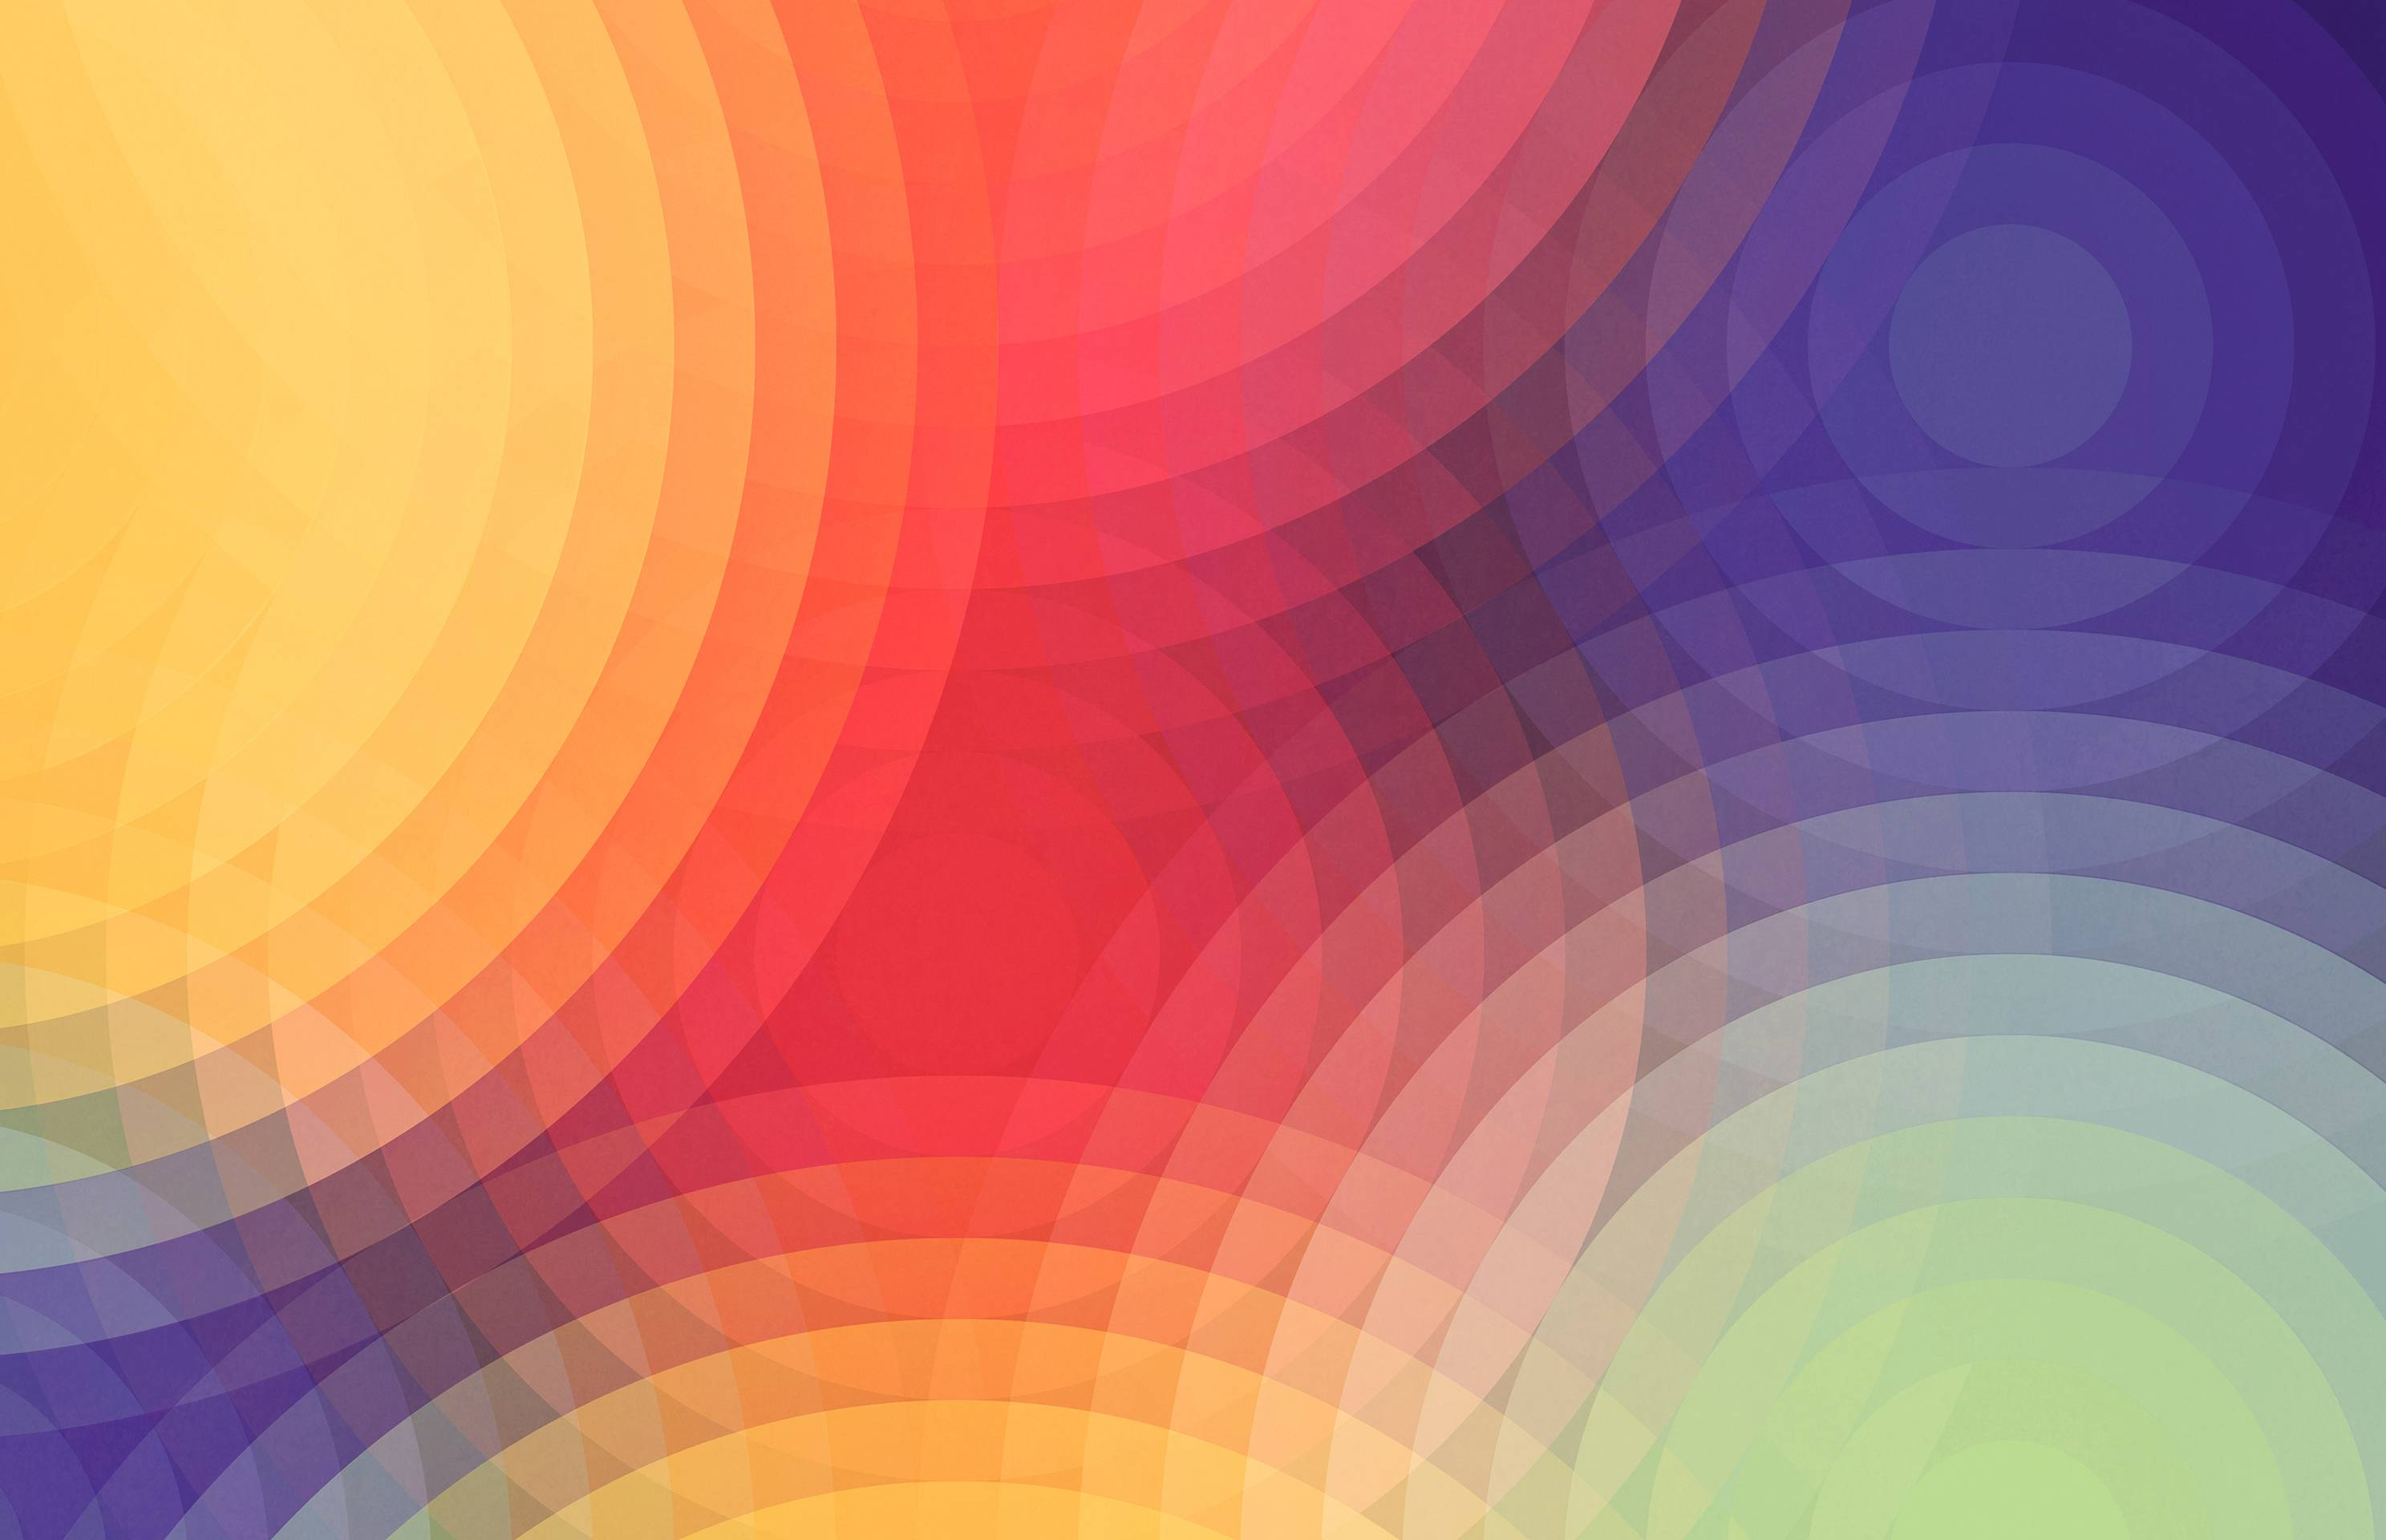 wallpapers from new nexus 7 leak out and you can download them here